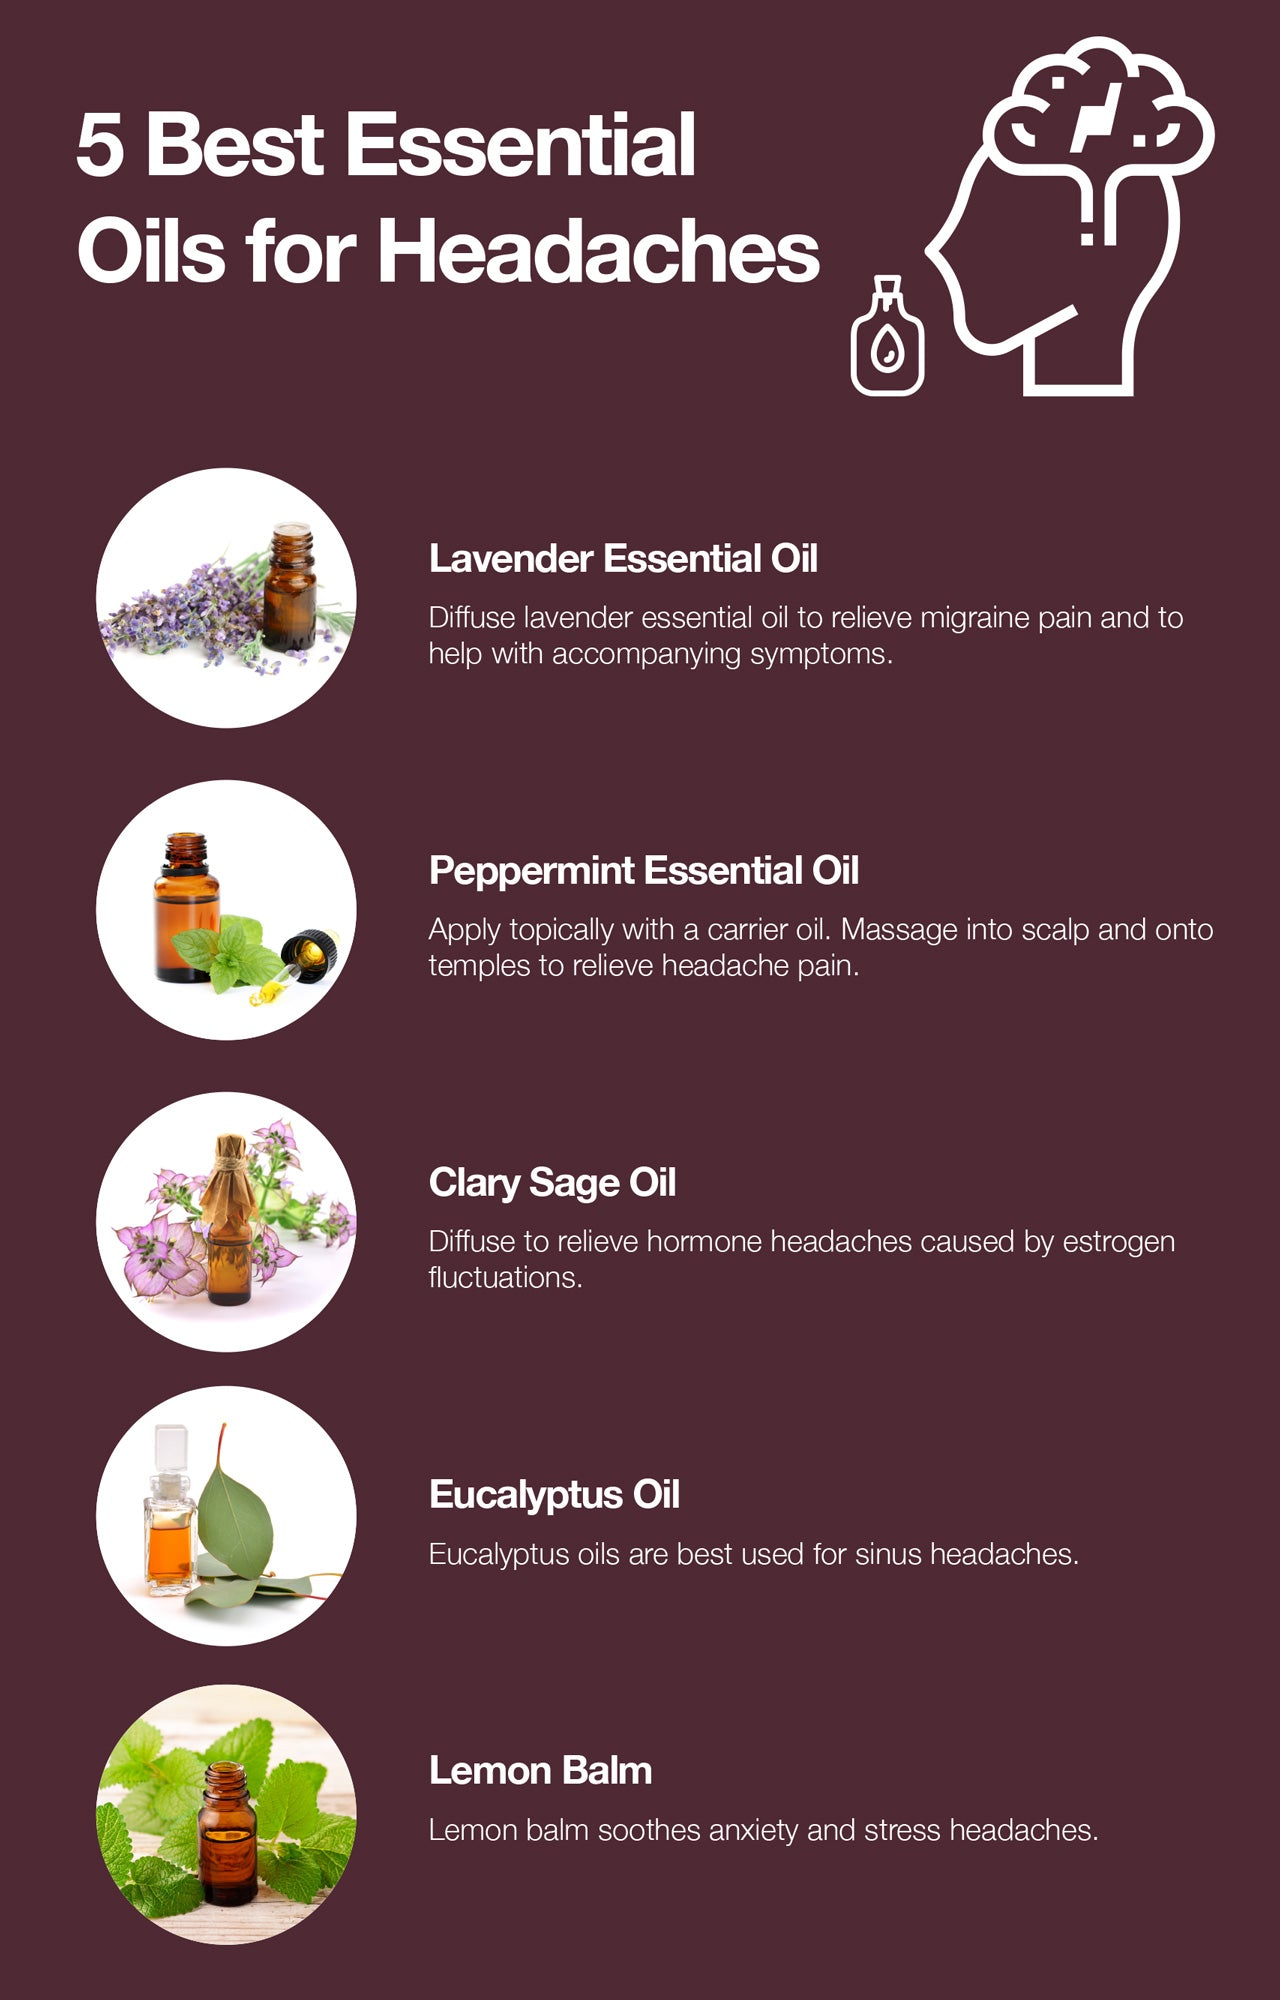 Here are the 5 best essential oils for headaches.